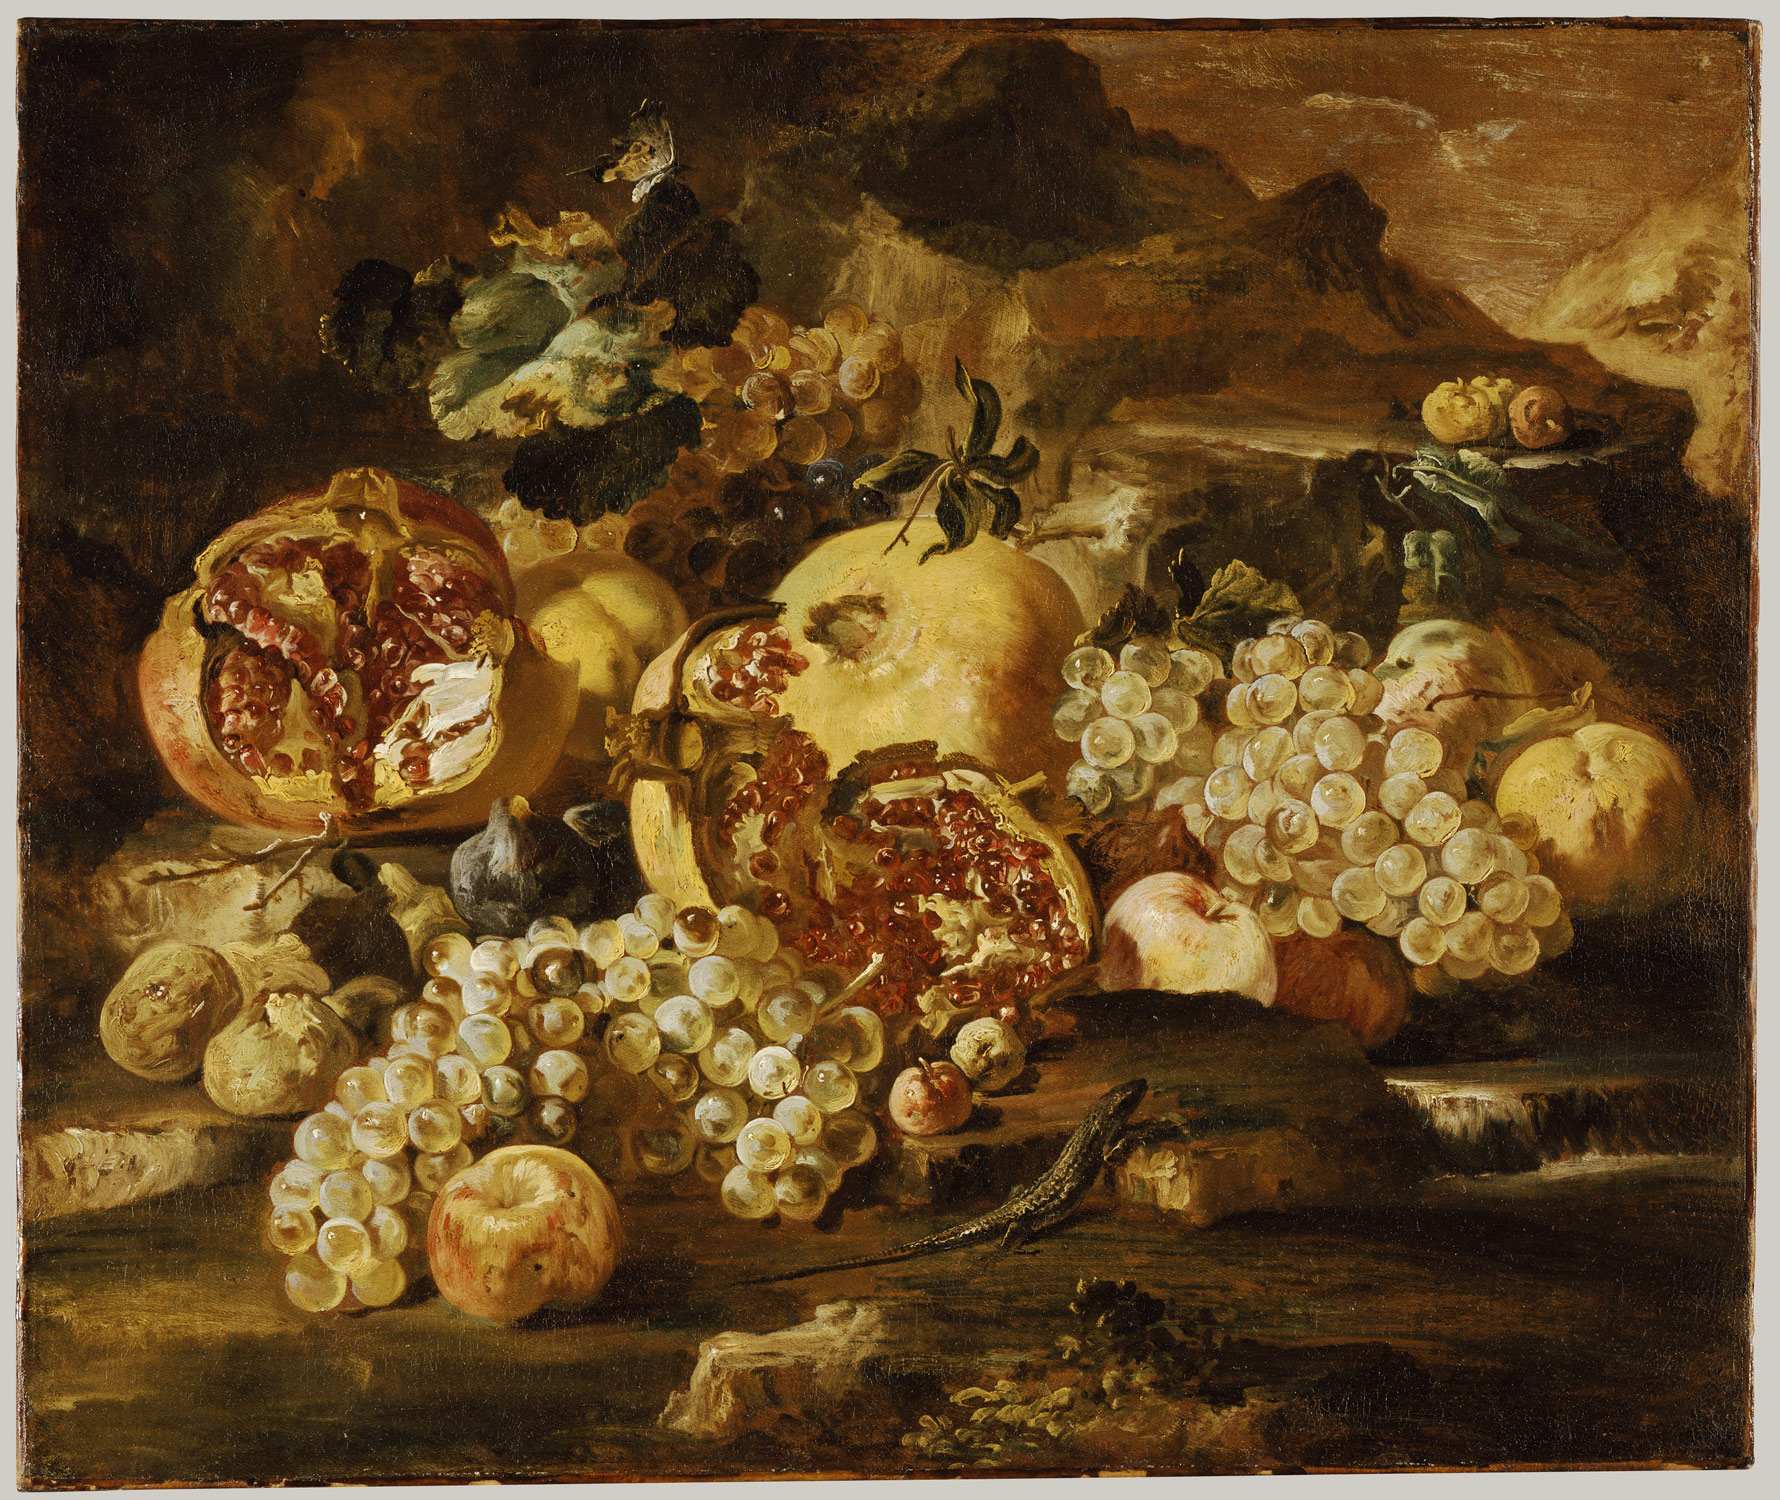 Pomegranates and Other Fruit in a Landscape